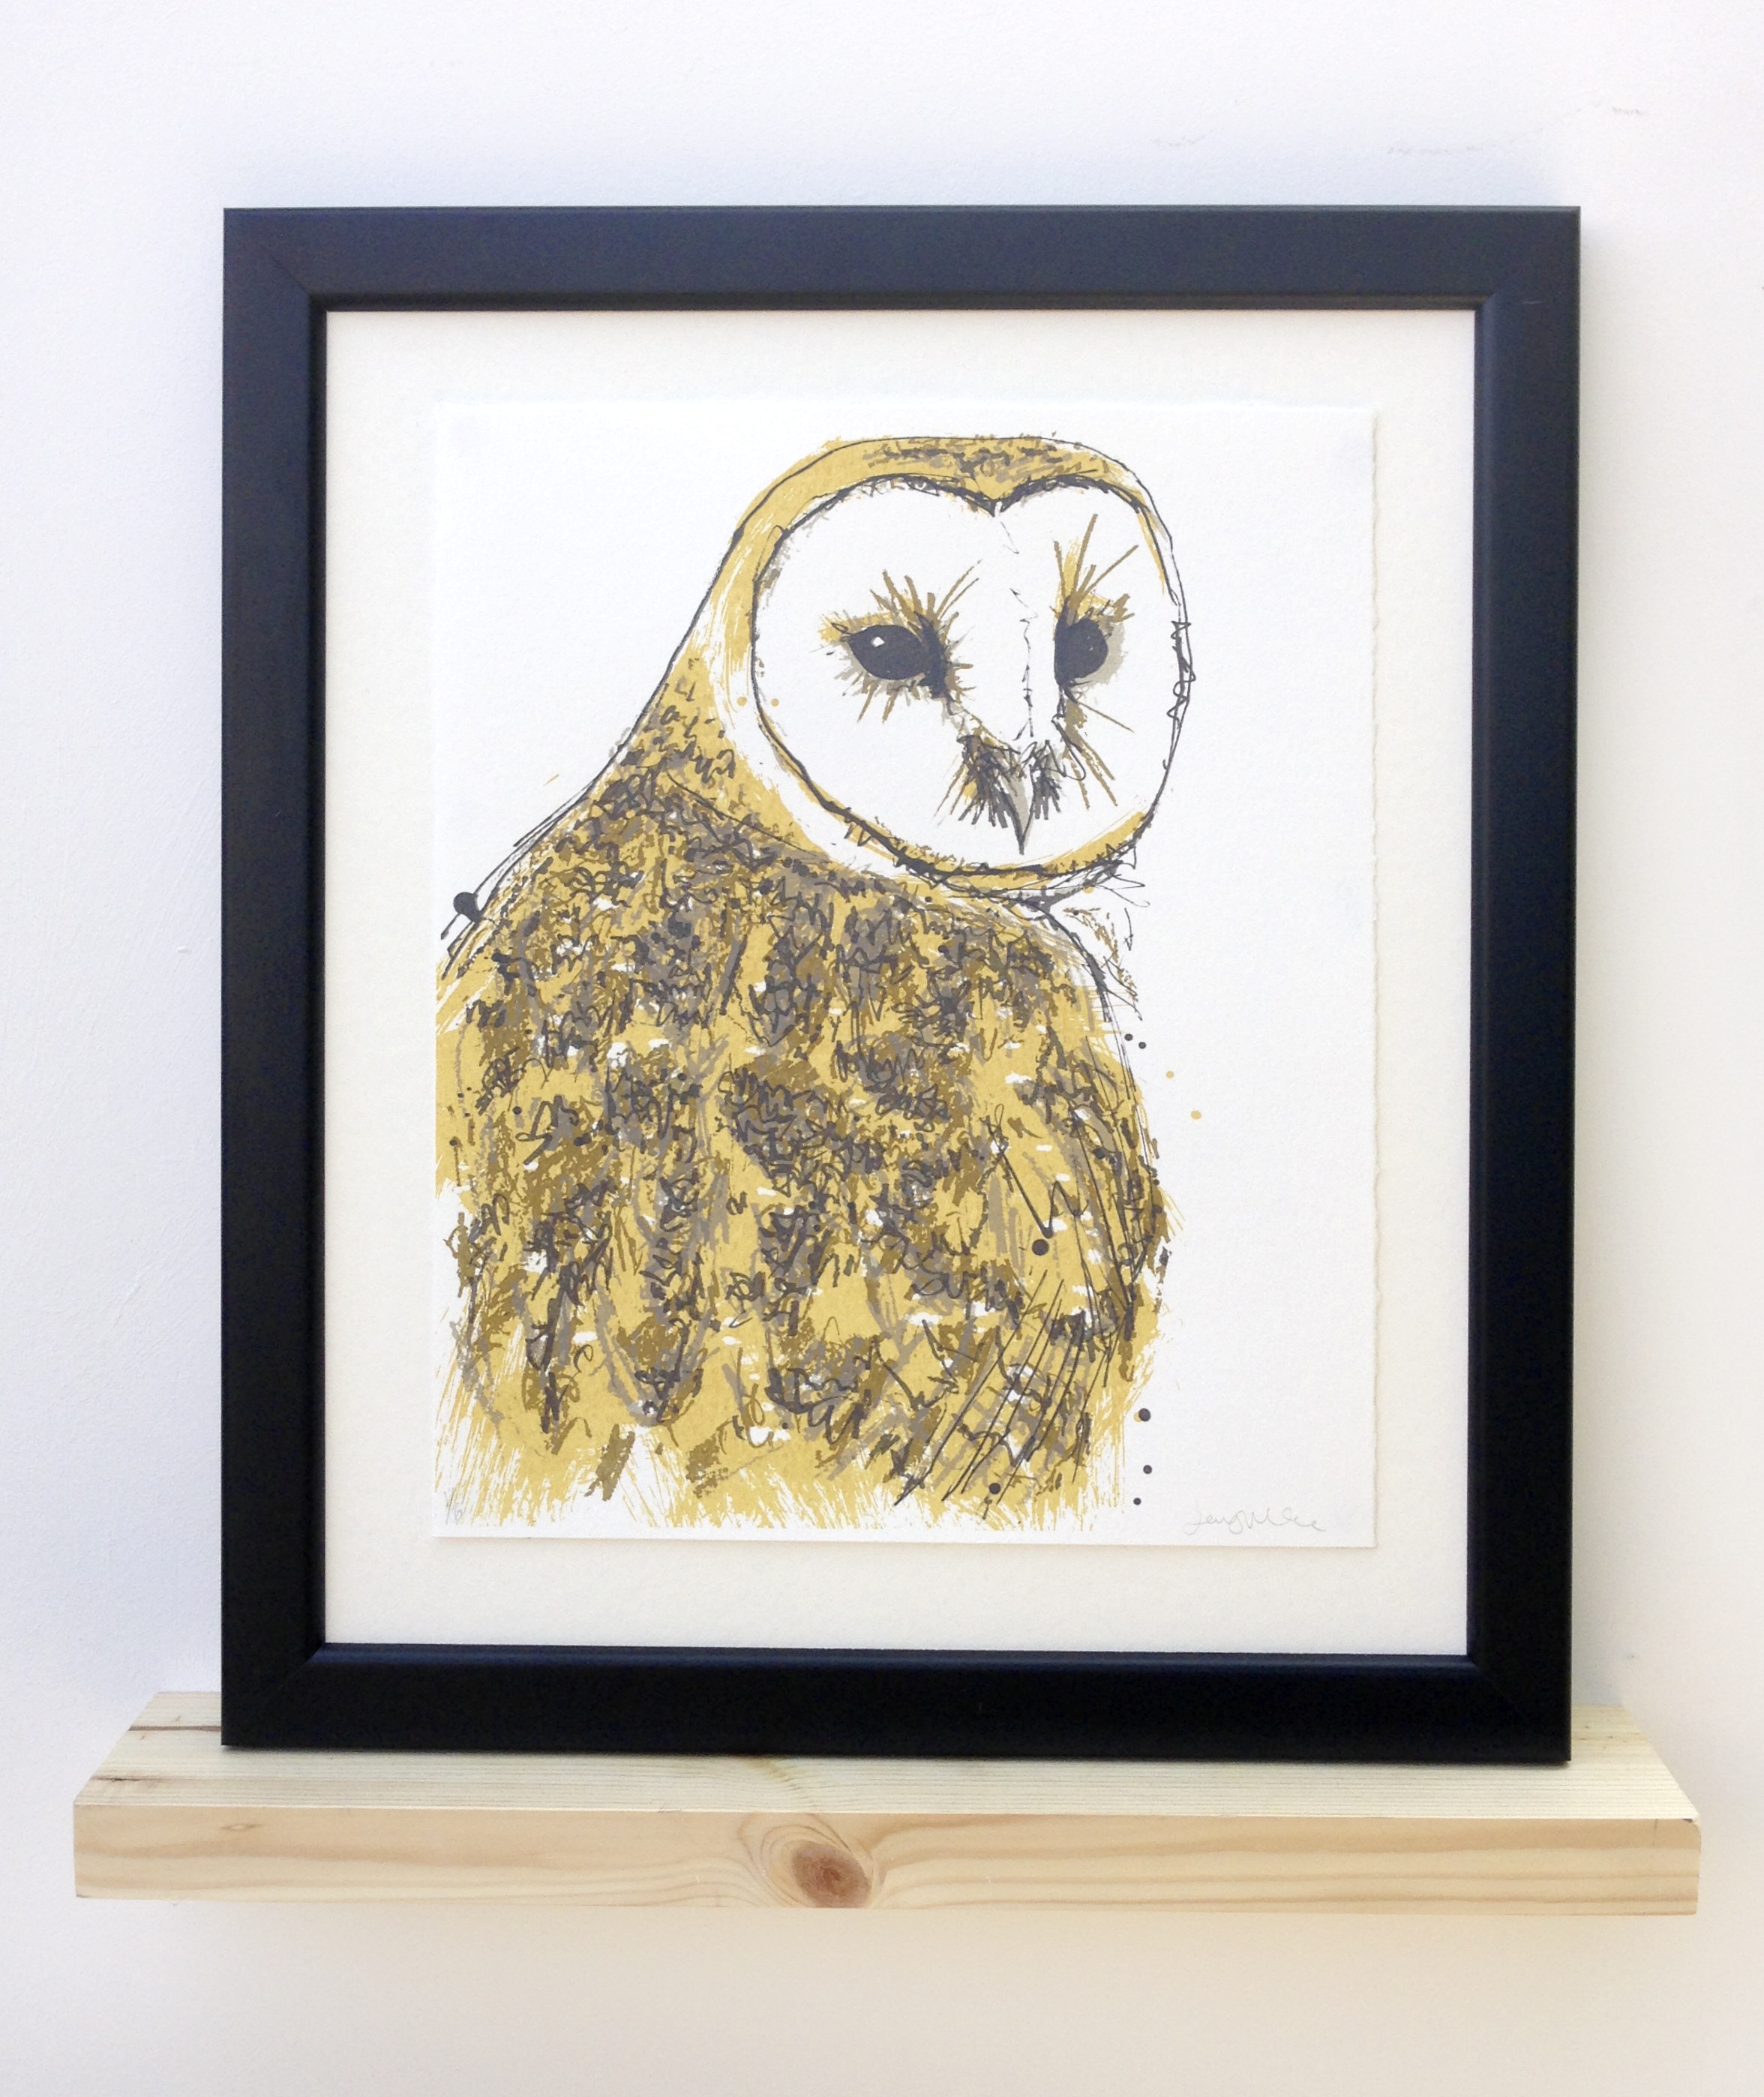 Barnowl. 2017. Screen print. Edition of 12. SOLD OUT